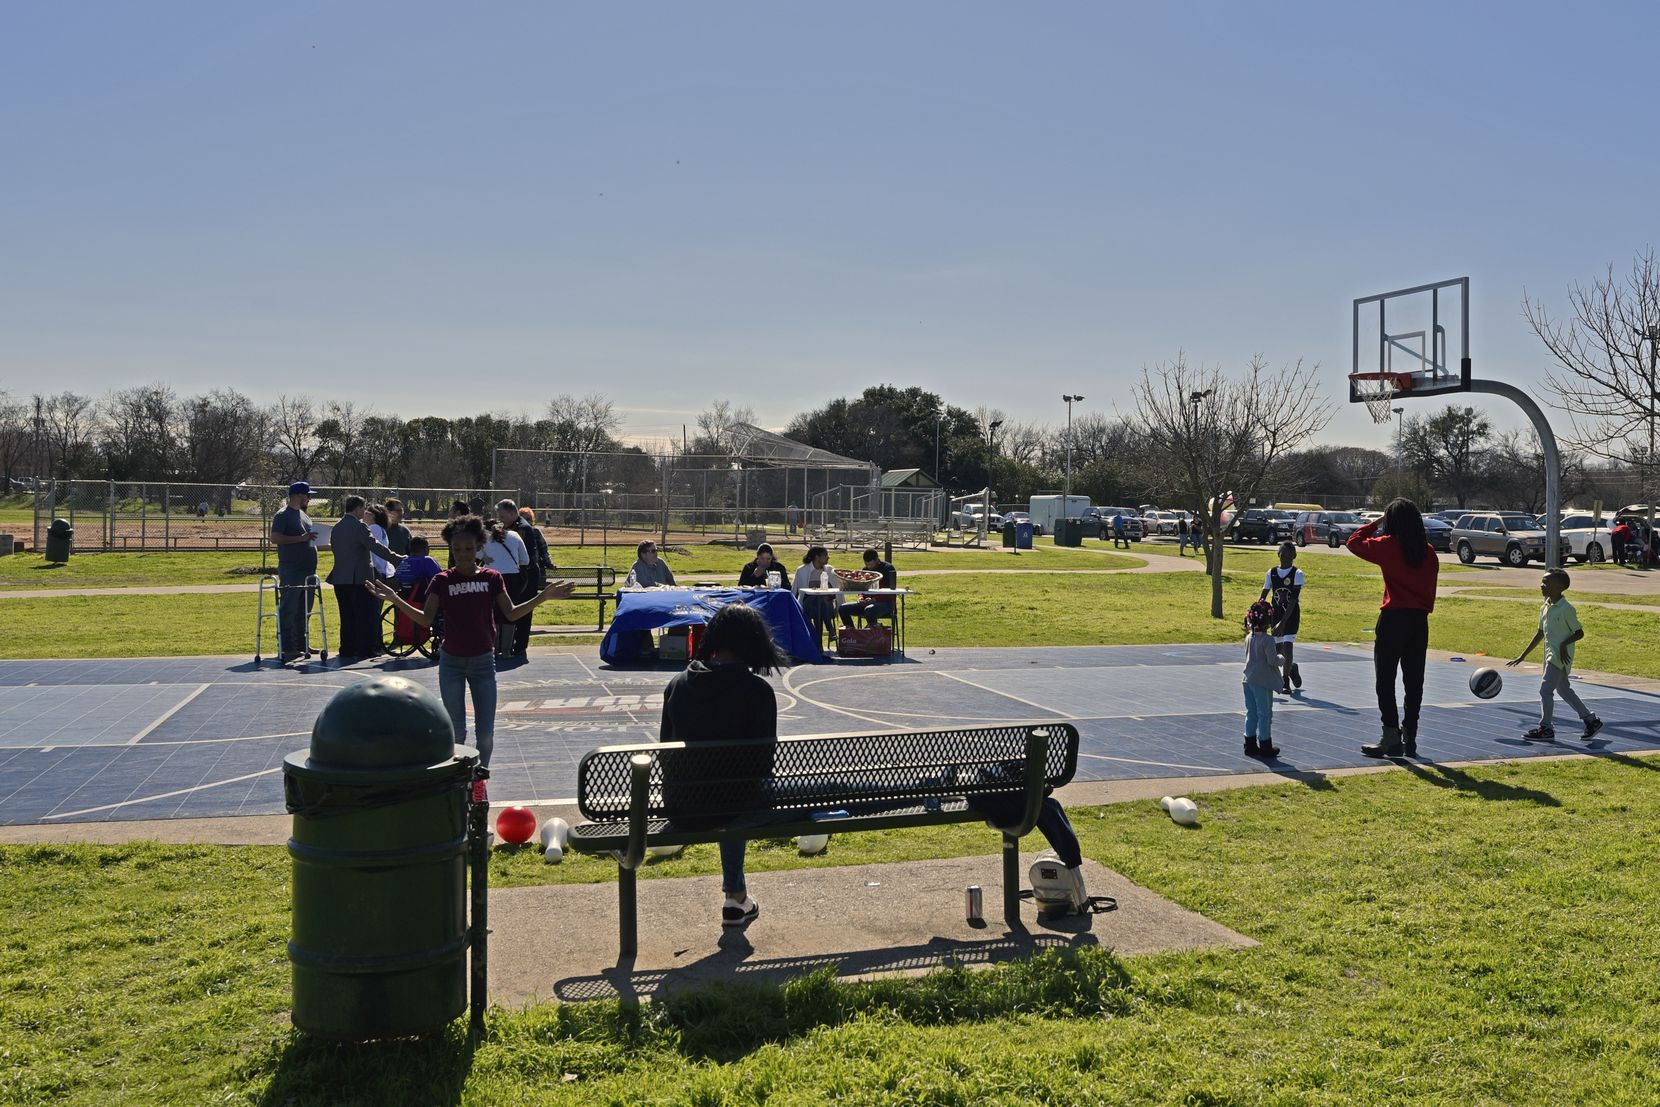 Kids play basketball during the Census Fun Day at Jaycee Zaragoza Park Pavilion in Dallas, Feb. 08, 2020.